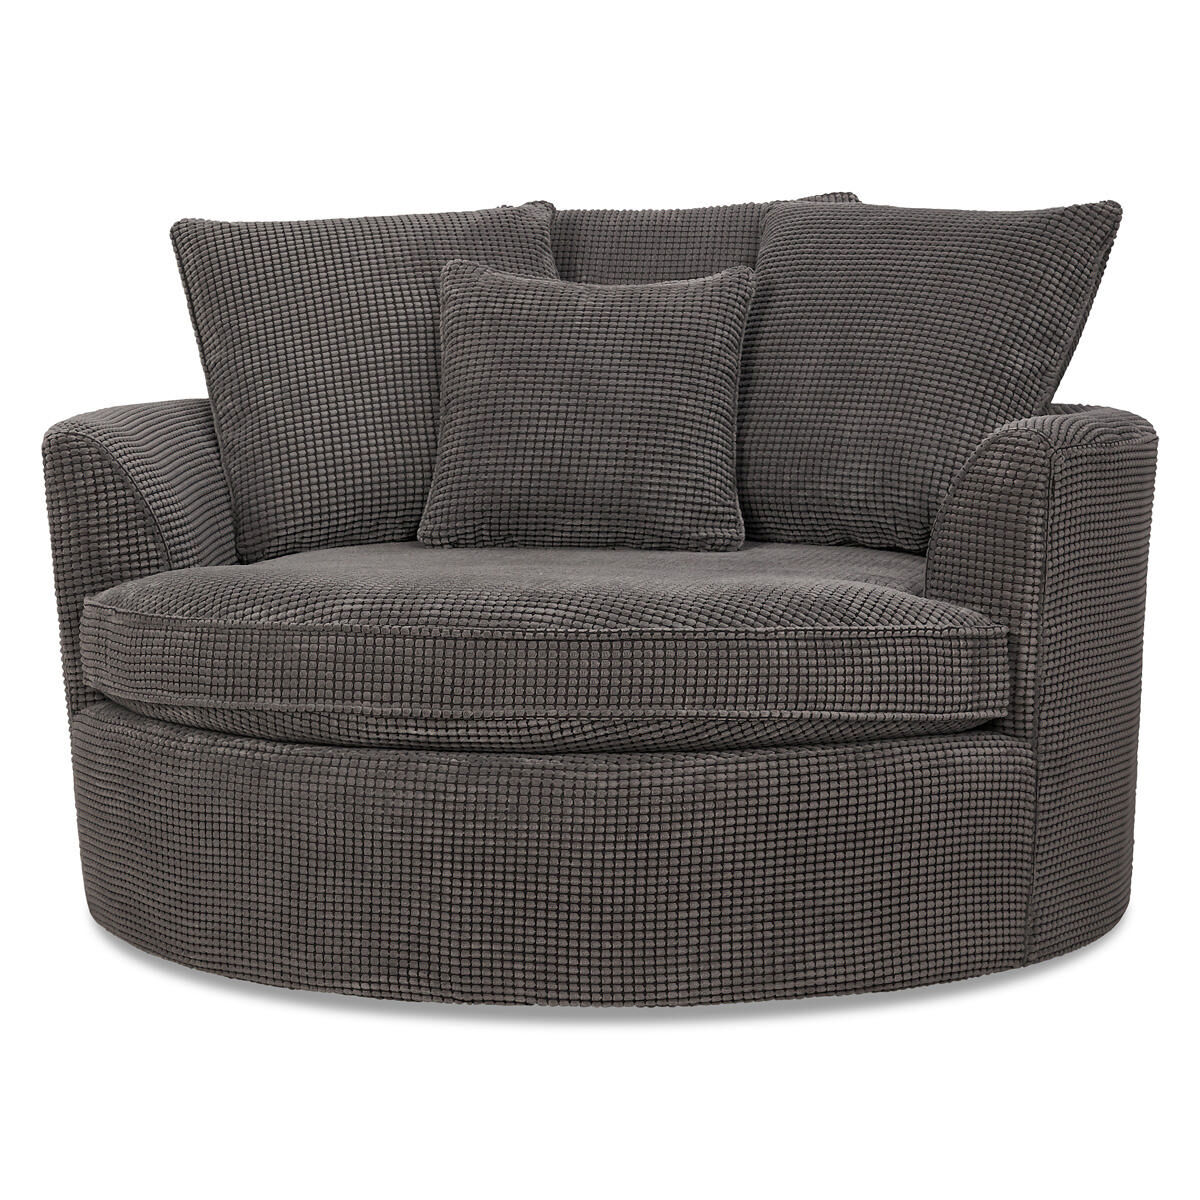 132745-full.jpg?swu003d1250u0026shu003d1250u0026smu003dfitu0026qu003d70  sc 1 st  Urban Barn & Nest Chair -Bumps Charcoal